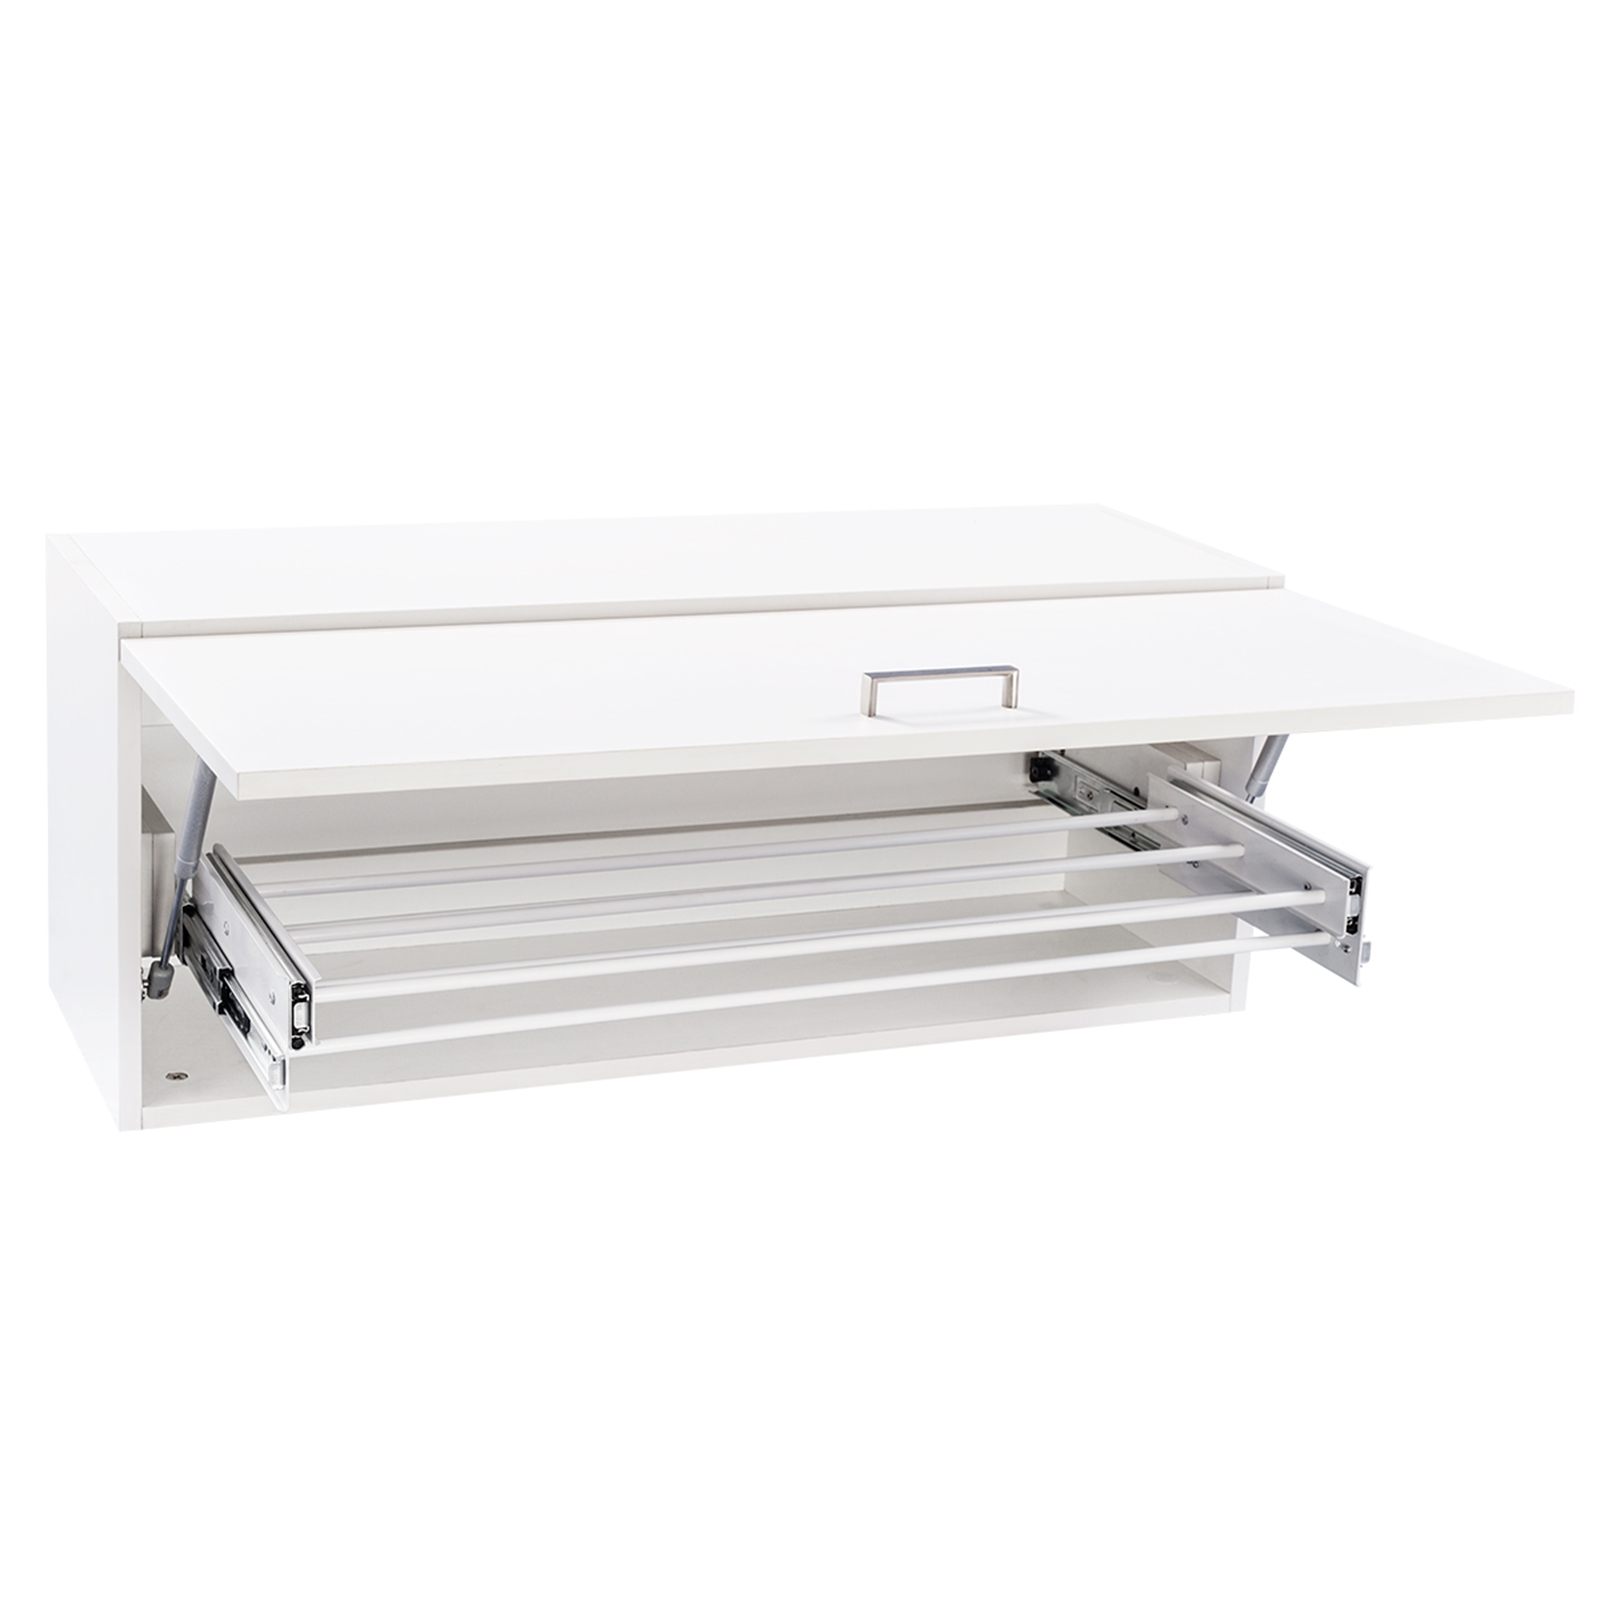 Flatpax Utility 900mm Drying Cabinet